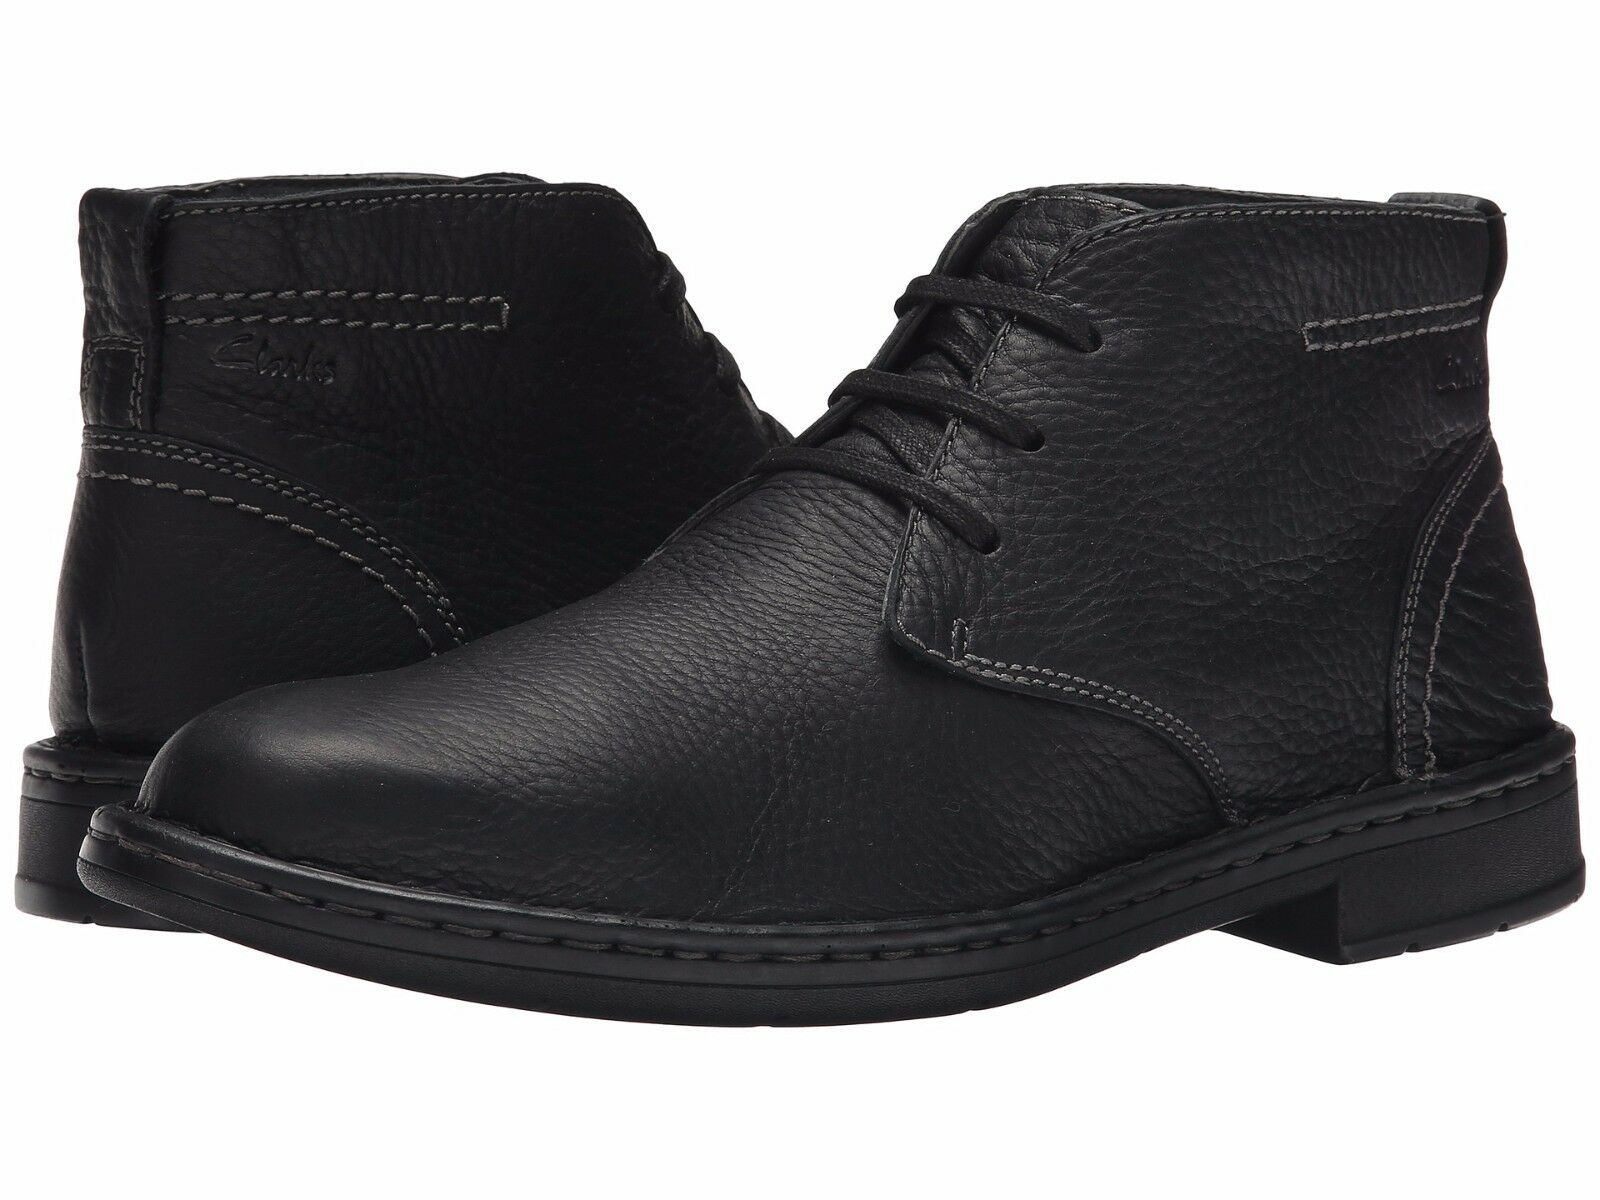 Men's Clarks Kyros Limit Boots